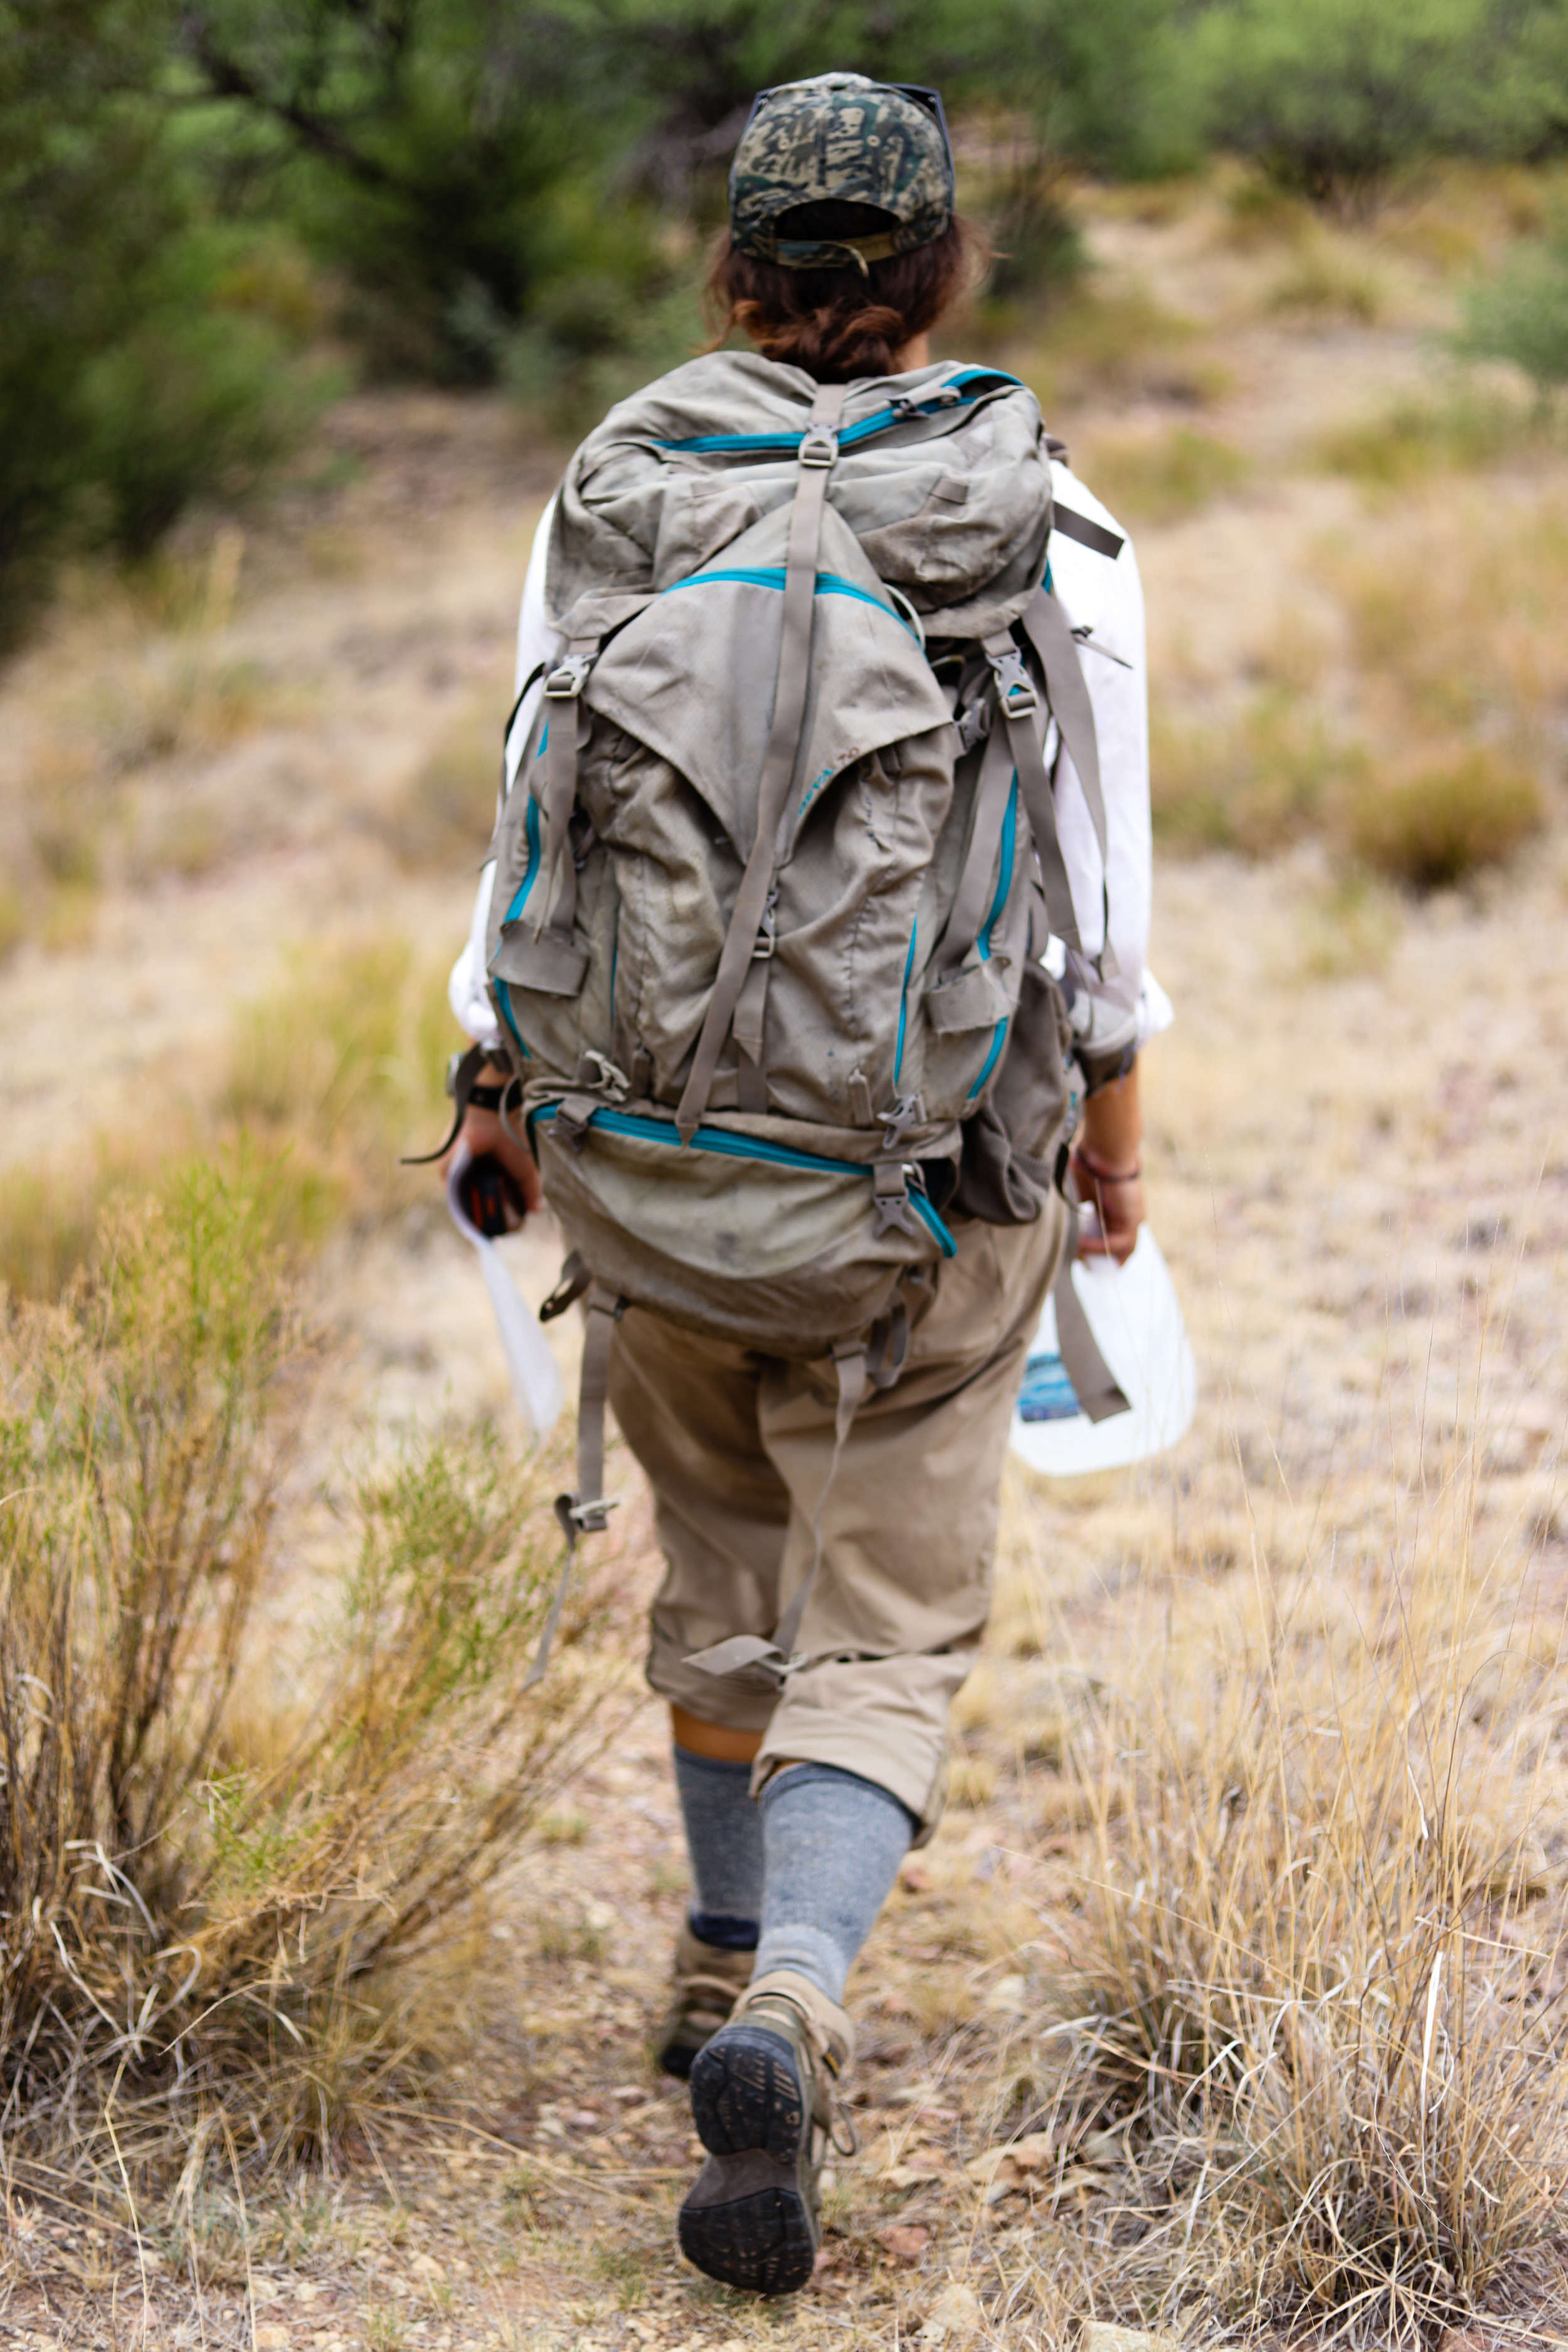 P, the leader of the hike, uses GPS to guide the way.